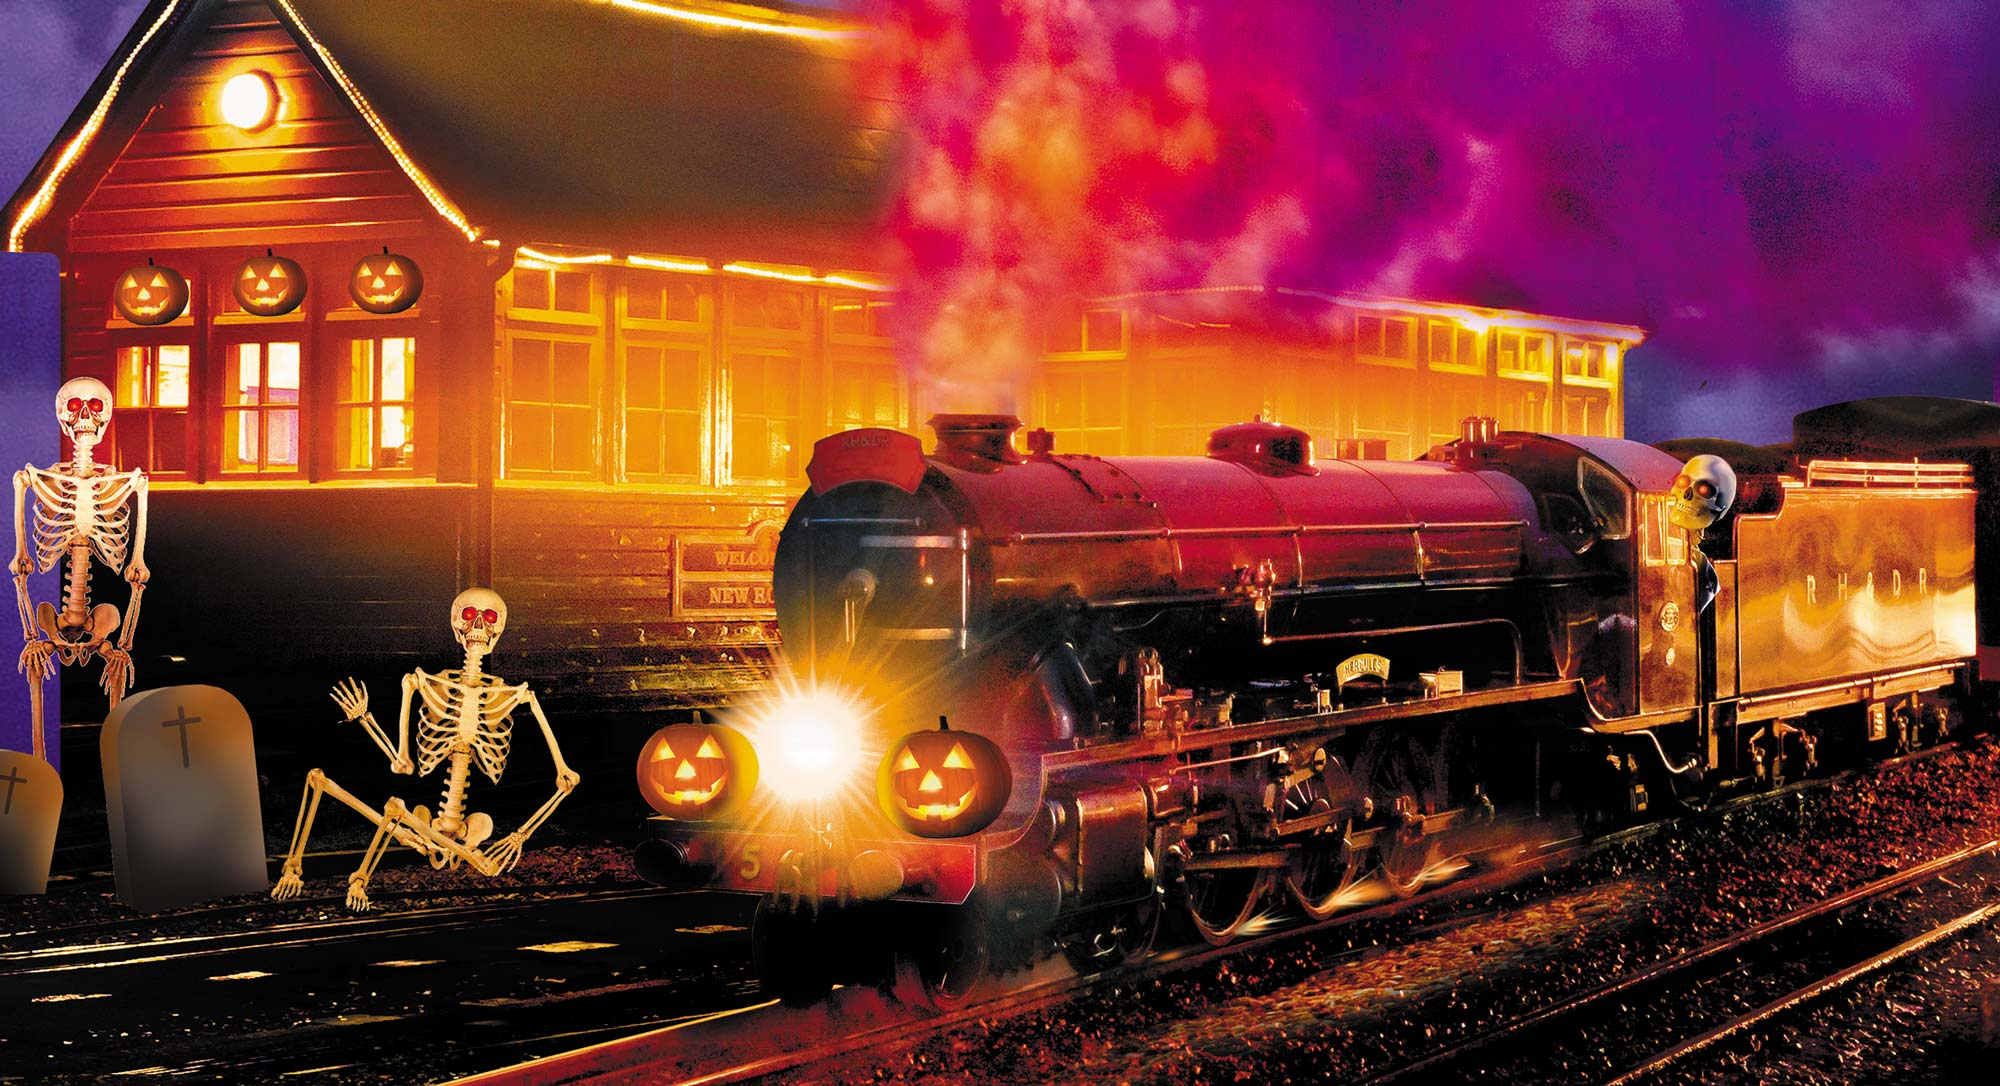 Halloween Spooky Special | Saturday 22nd September | Romney Hythe & Dymchurch Railway